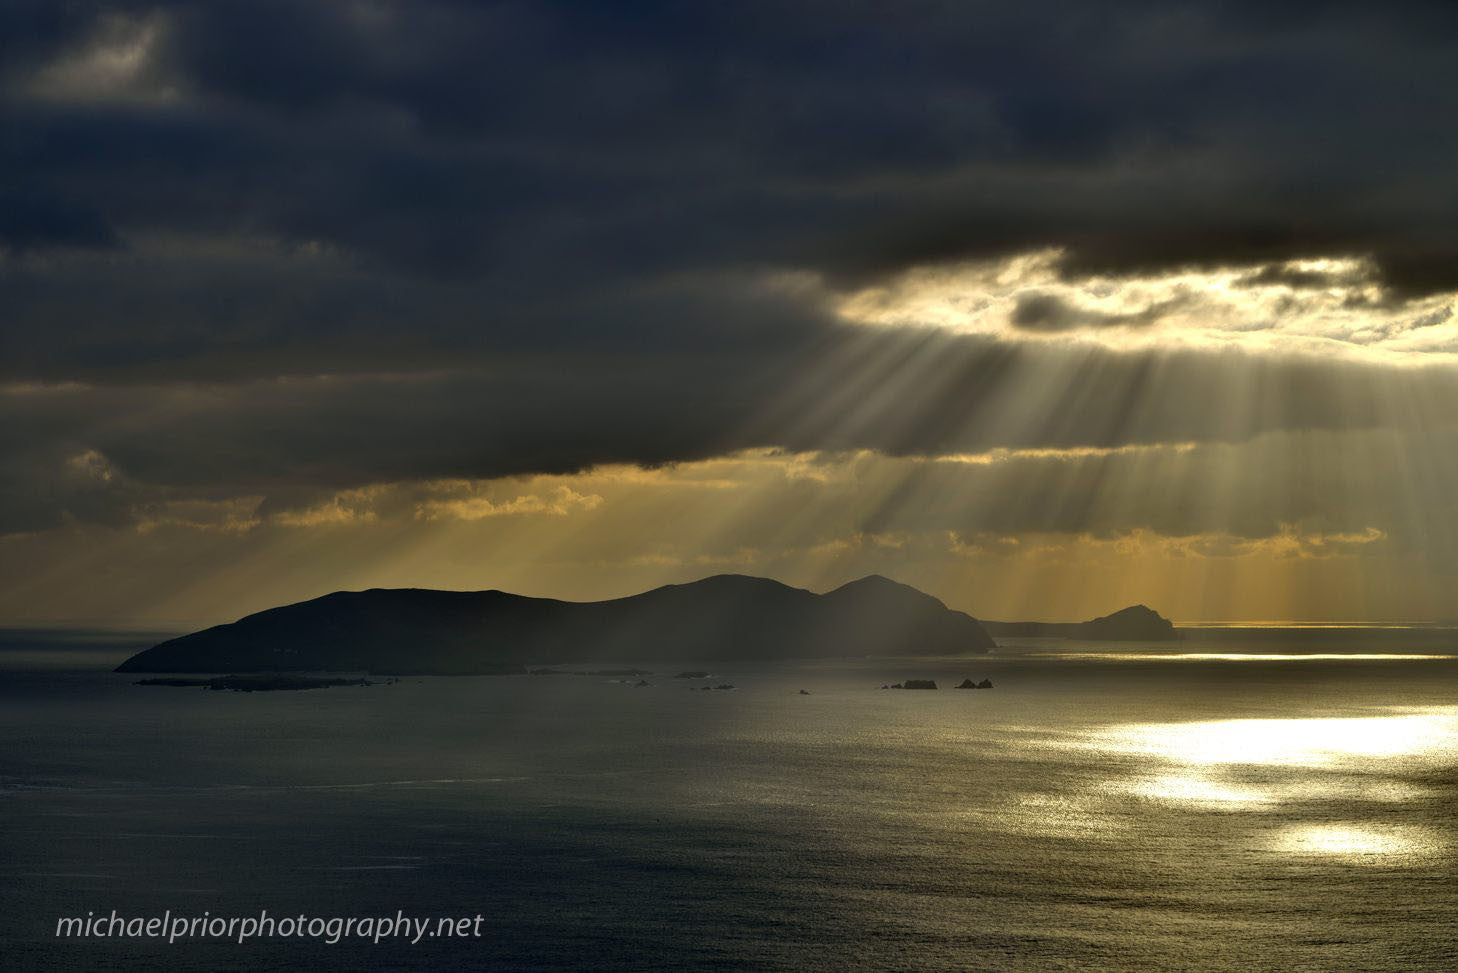 Sunrays On The Great Blasket Island - Michael Prior Photography